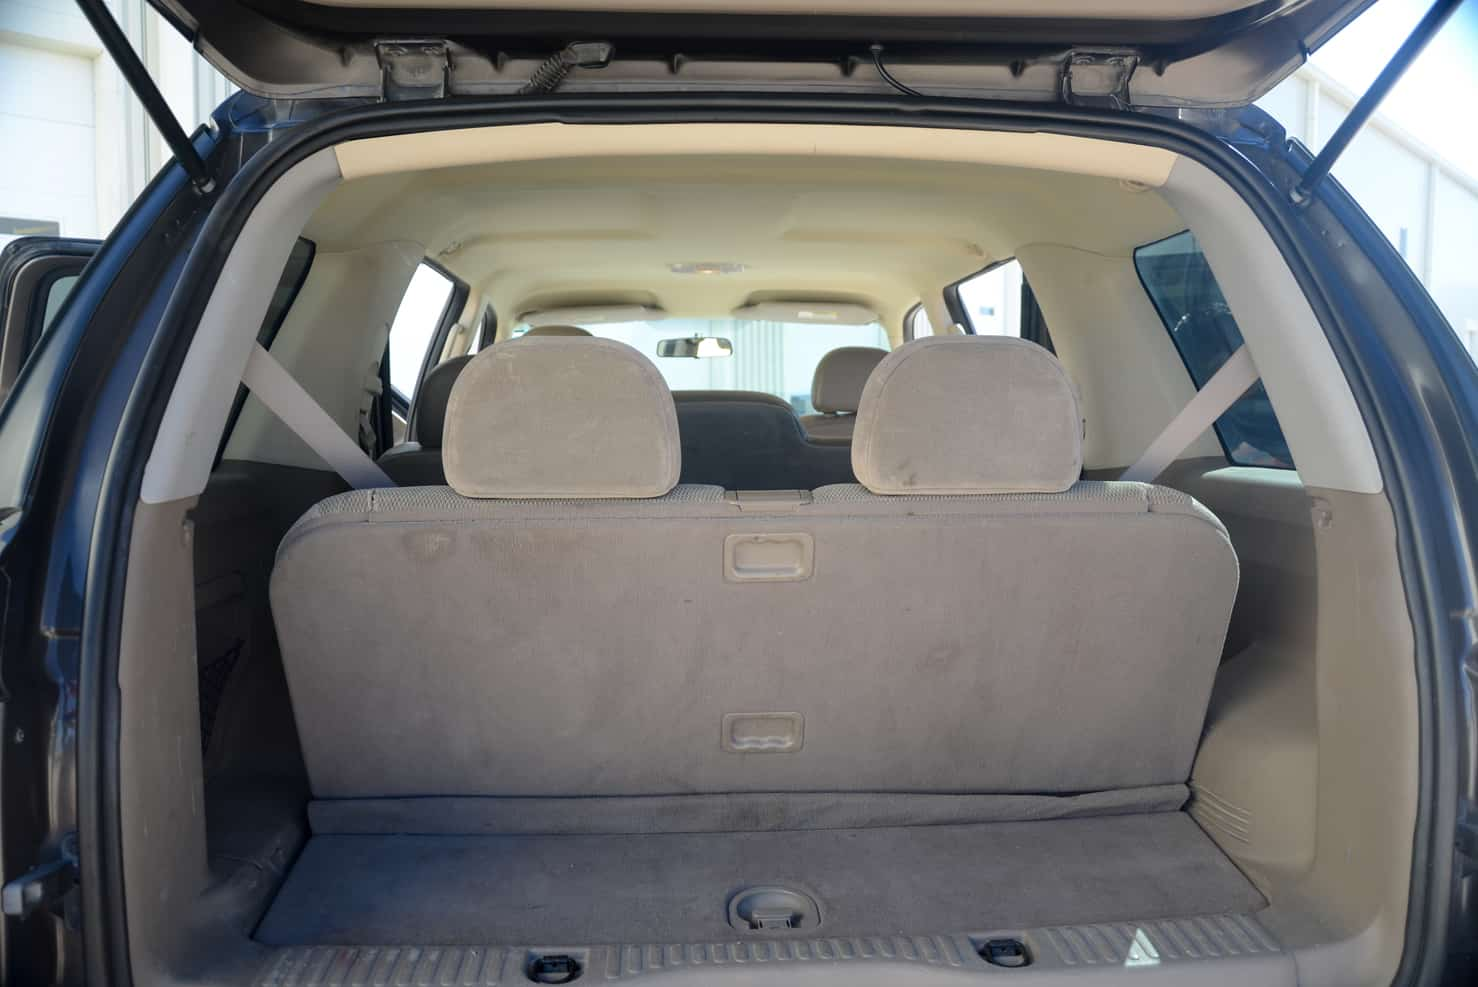 3rd seat up + room for luggage | Ford Explorer